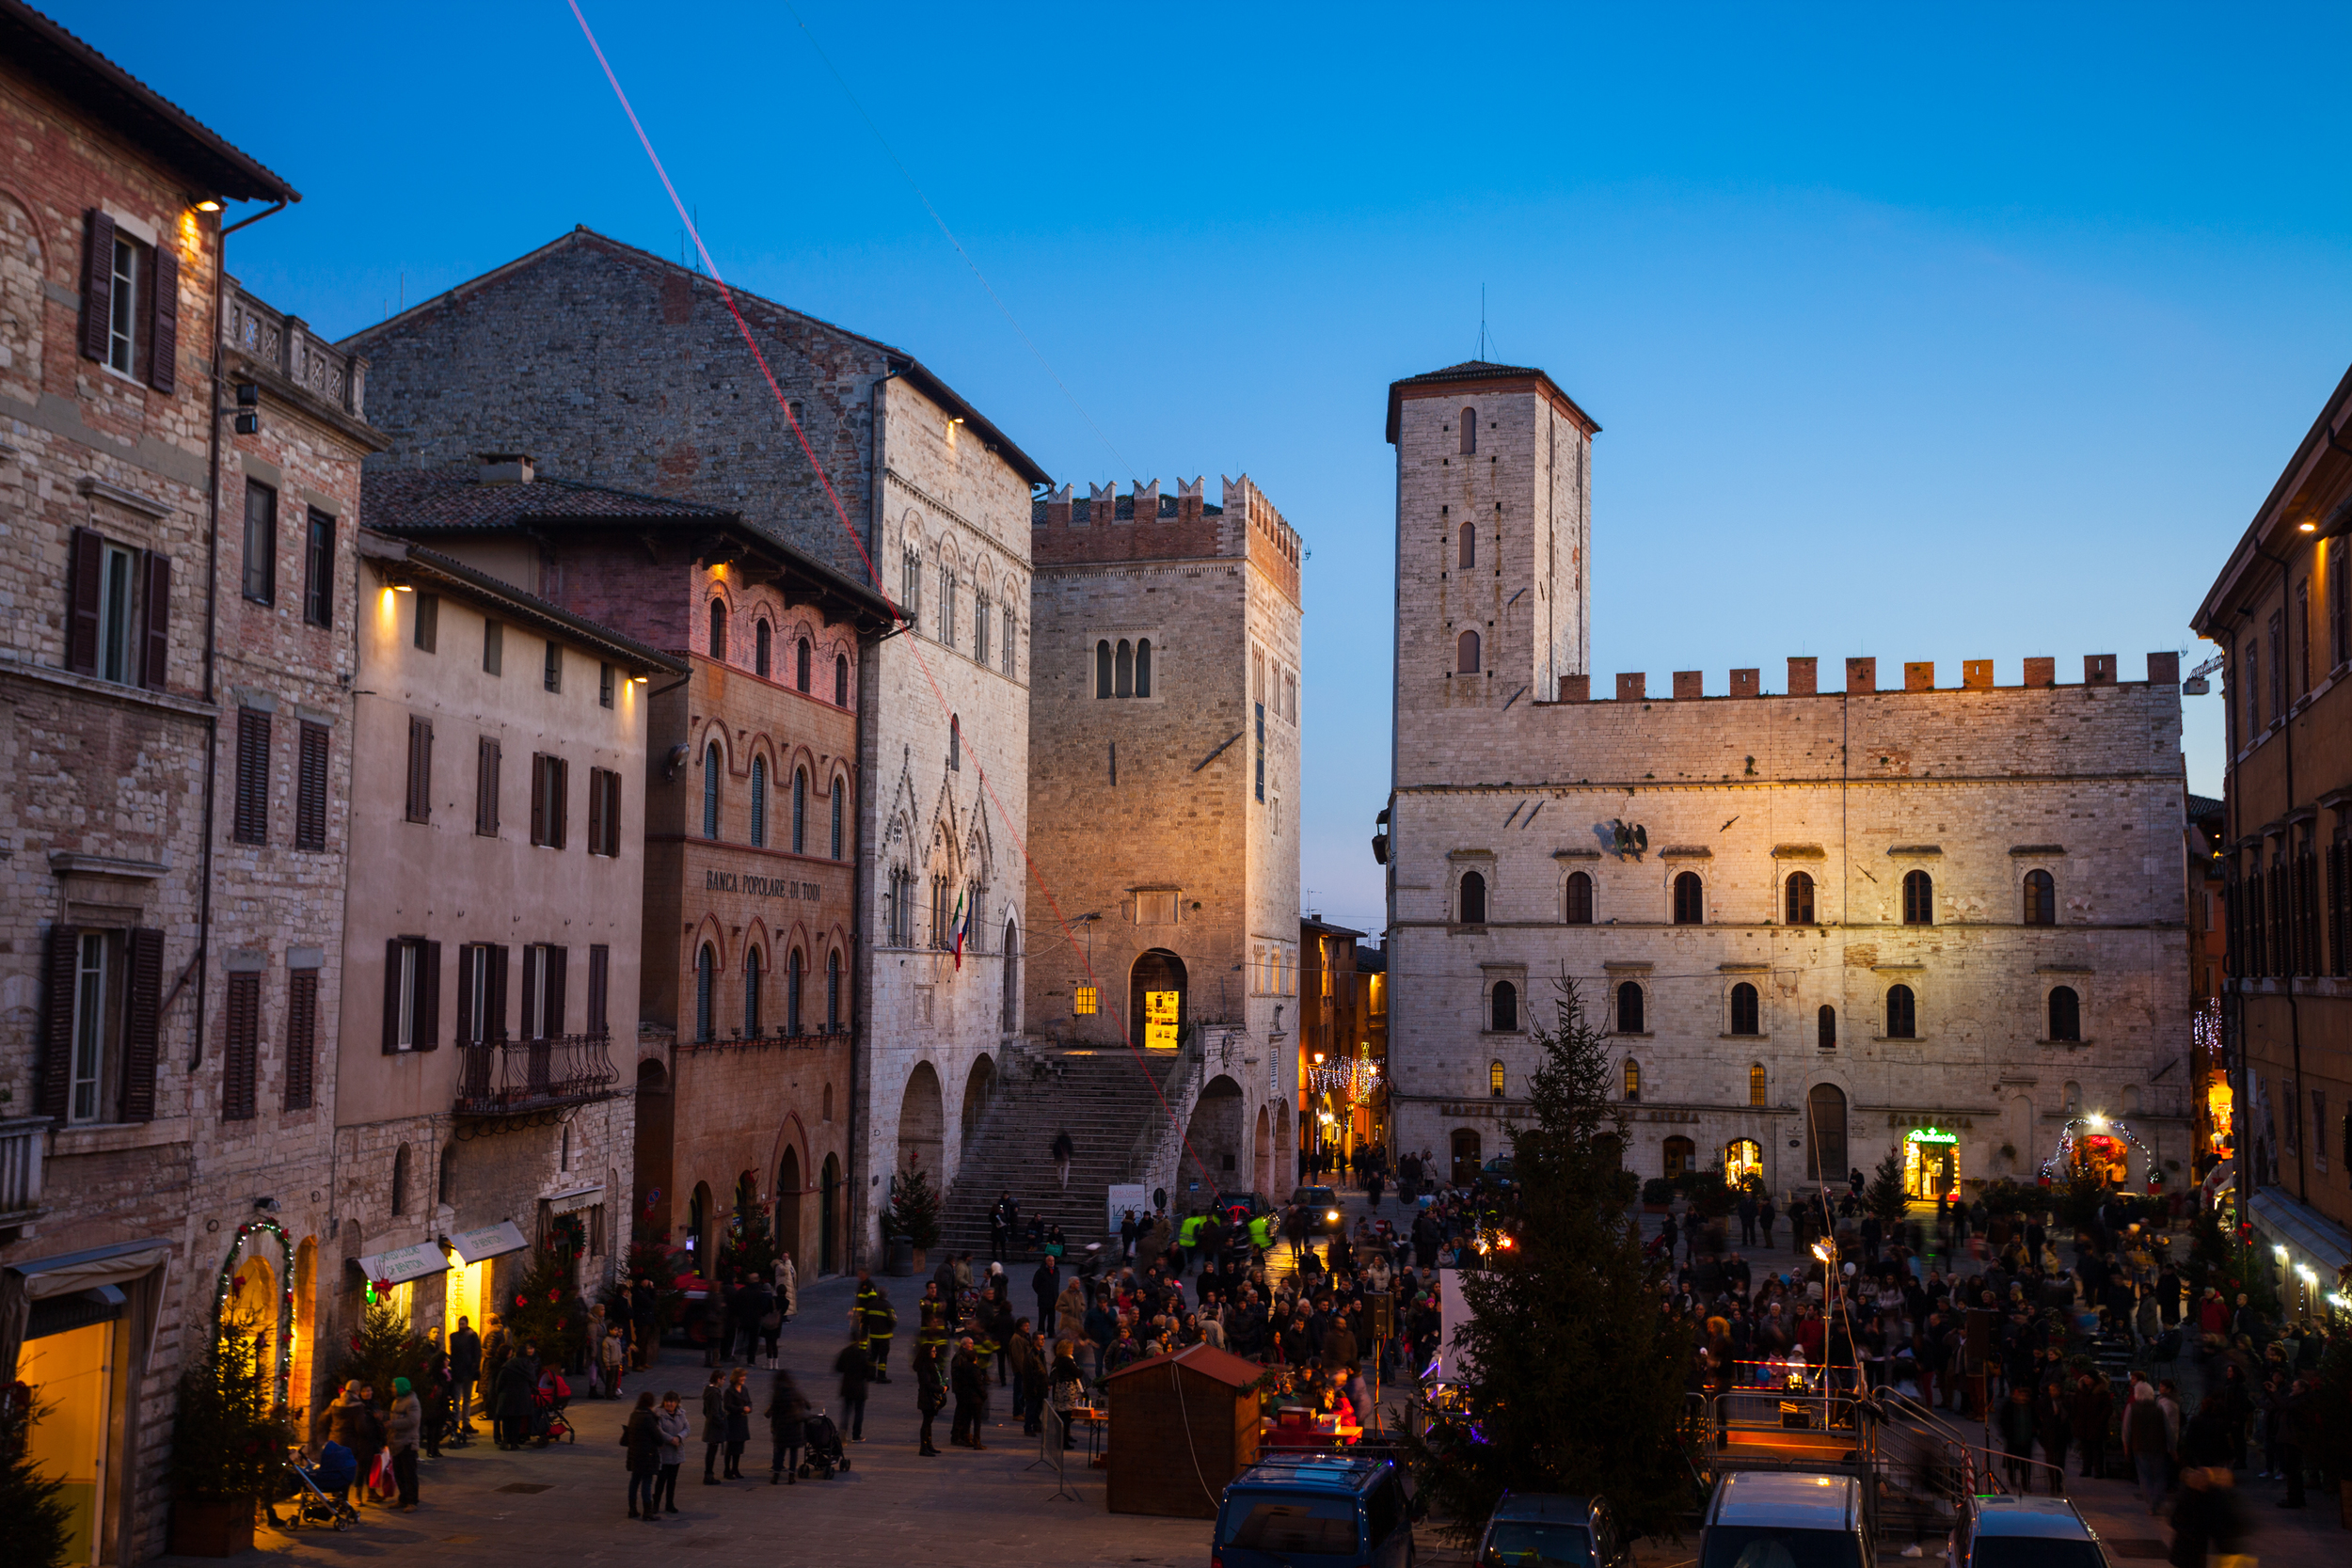 The main square of Todi offers spectacular views of the surrounding countryside.